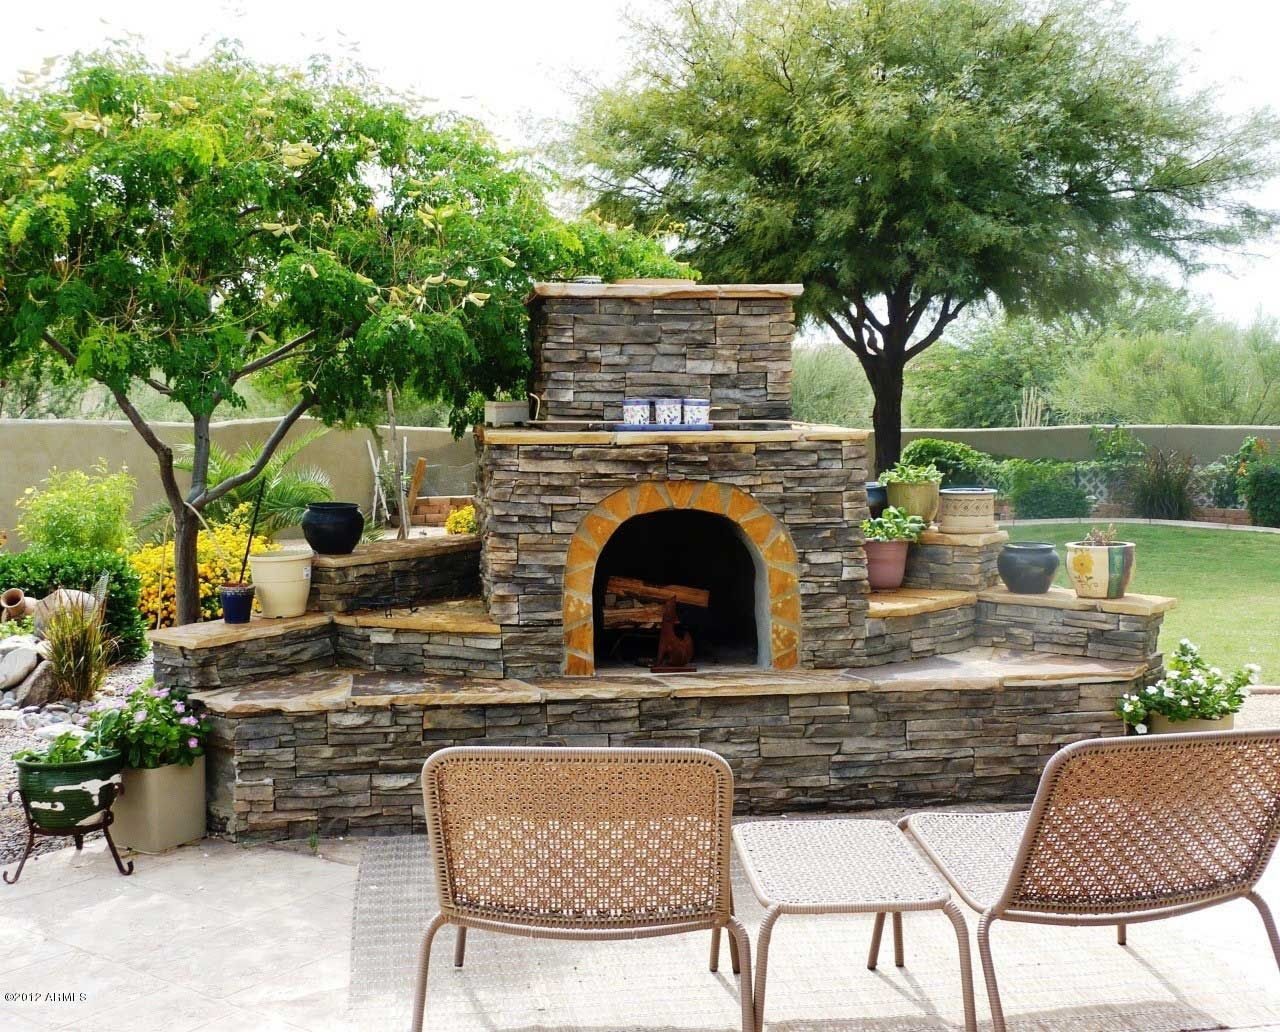 creative ideas outdoor fireplace designs outdoor design and ideas - Outdoor Fireplace Design Ideas